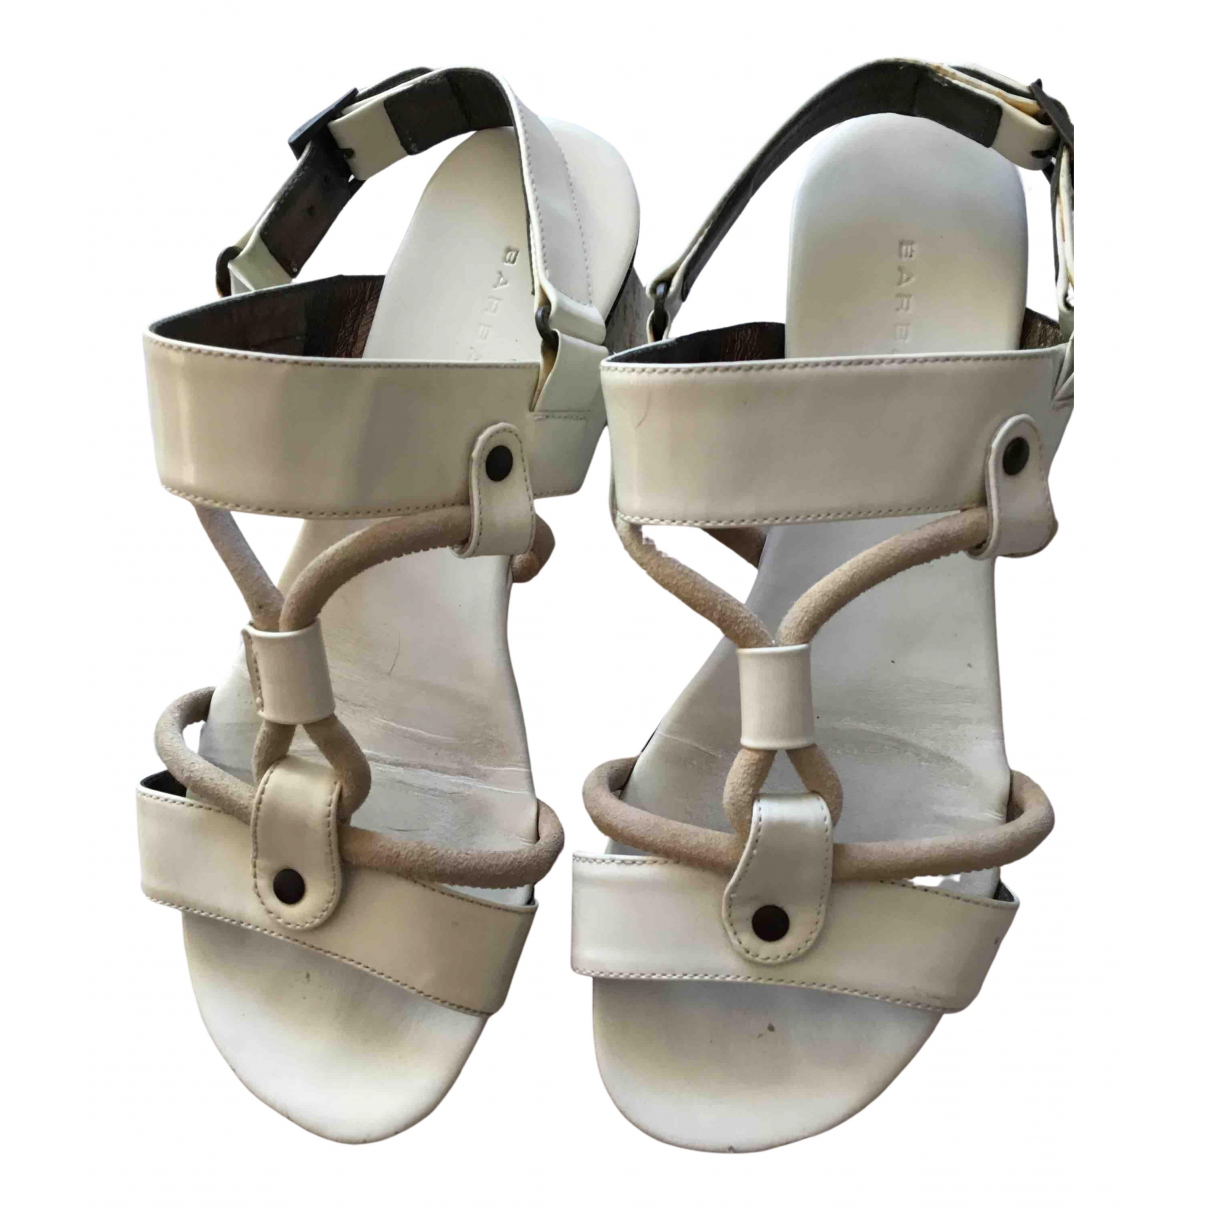 Barbara Bui N White Patent leather Sandals for Women 36 EU